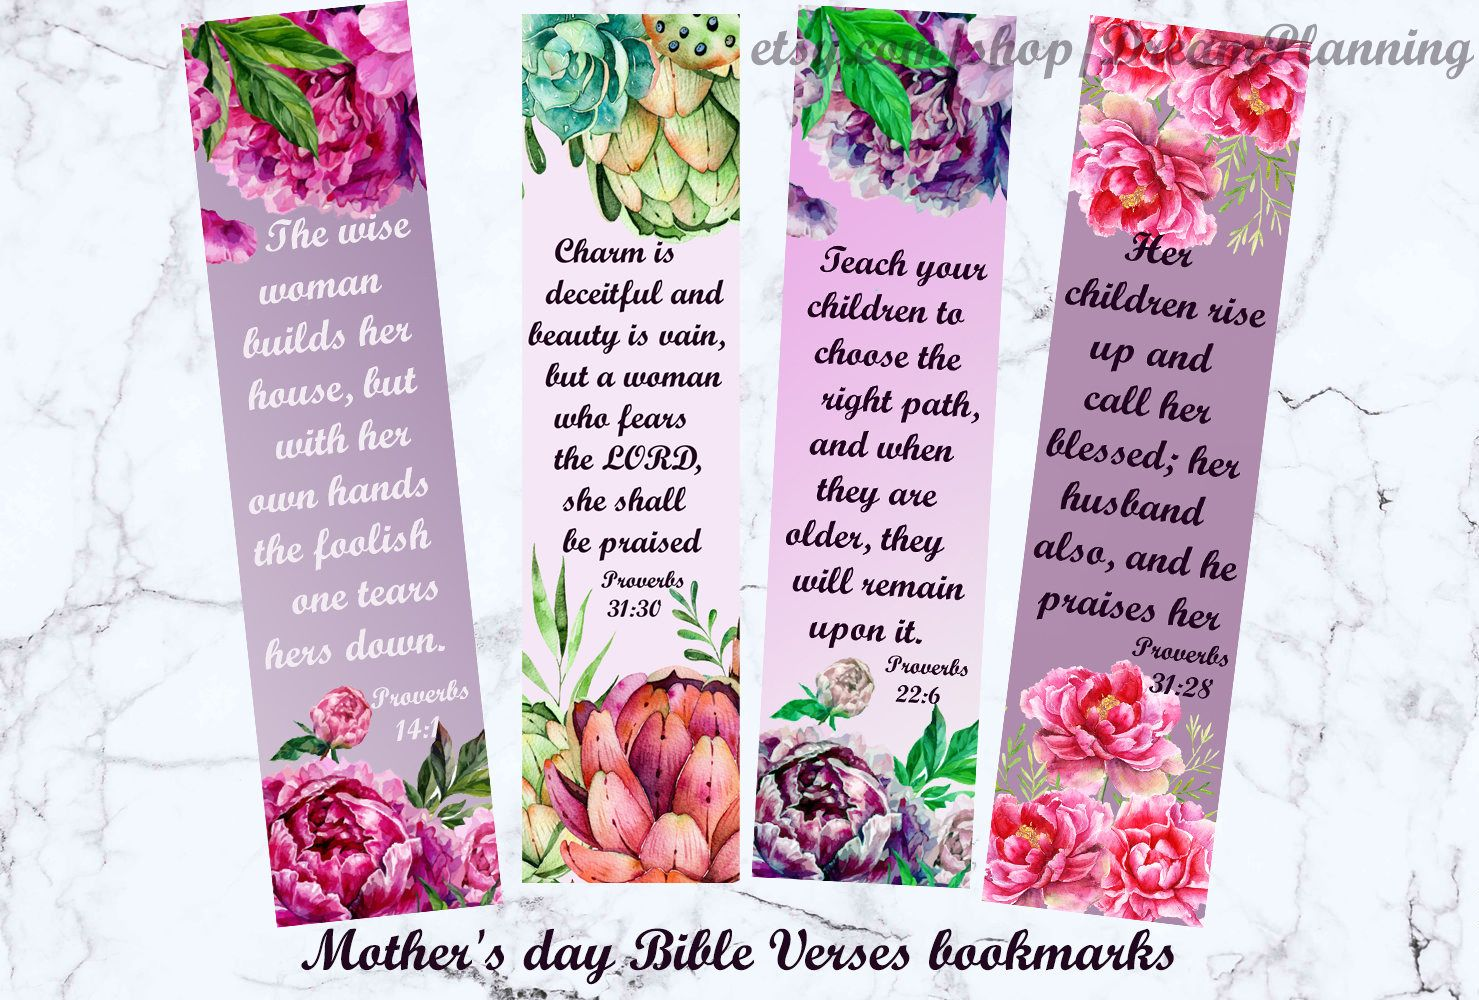 mother's day bible verses bookmarks christian mother day bible